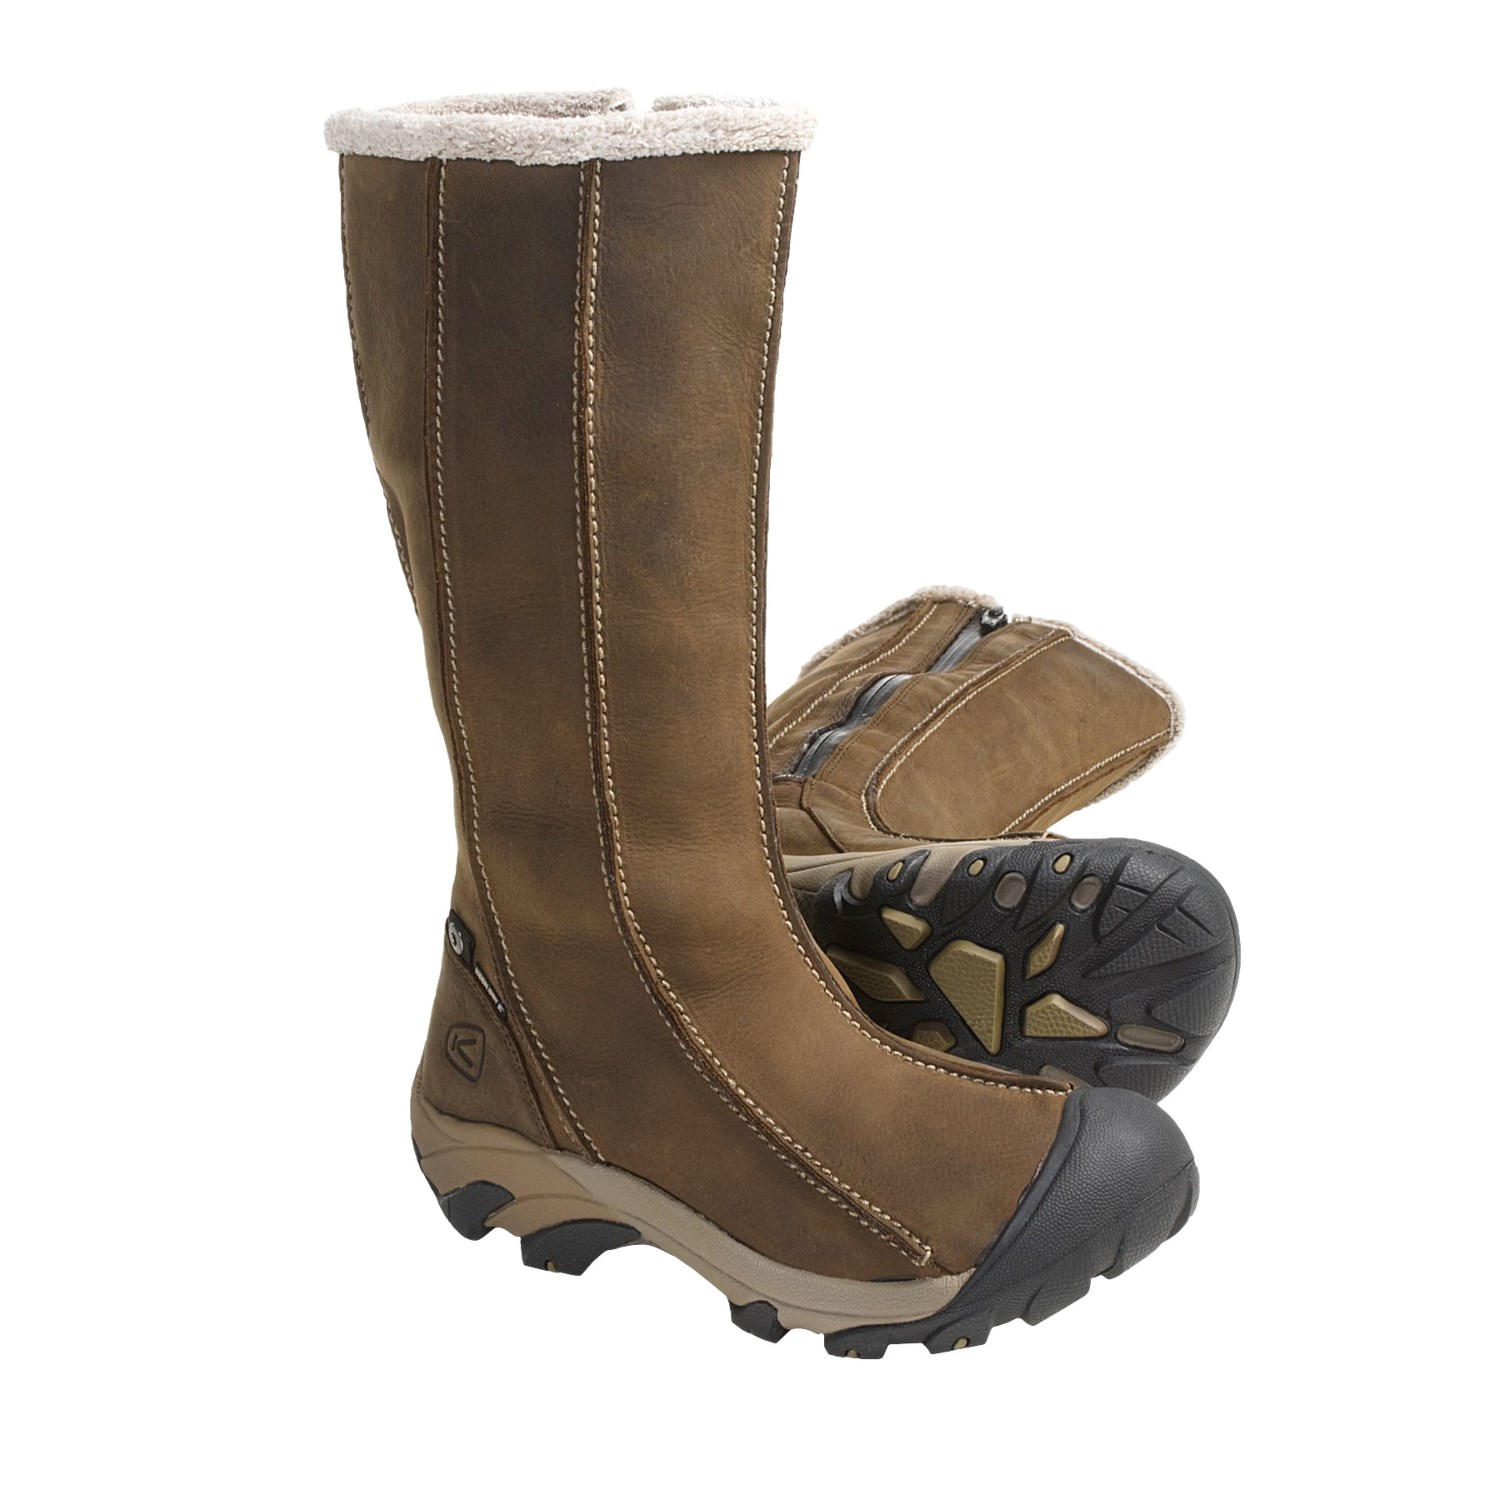 Womens Snow Boots Size 12 Wide | Santa Barbara Institute for ...